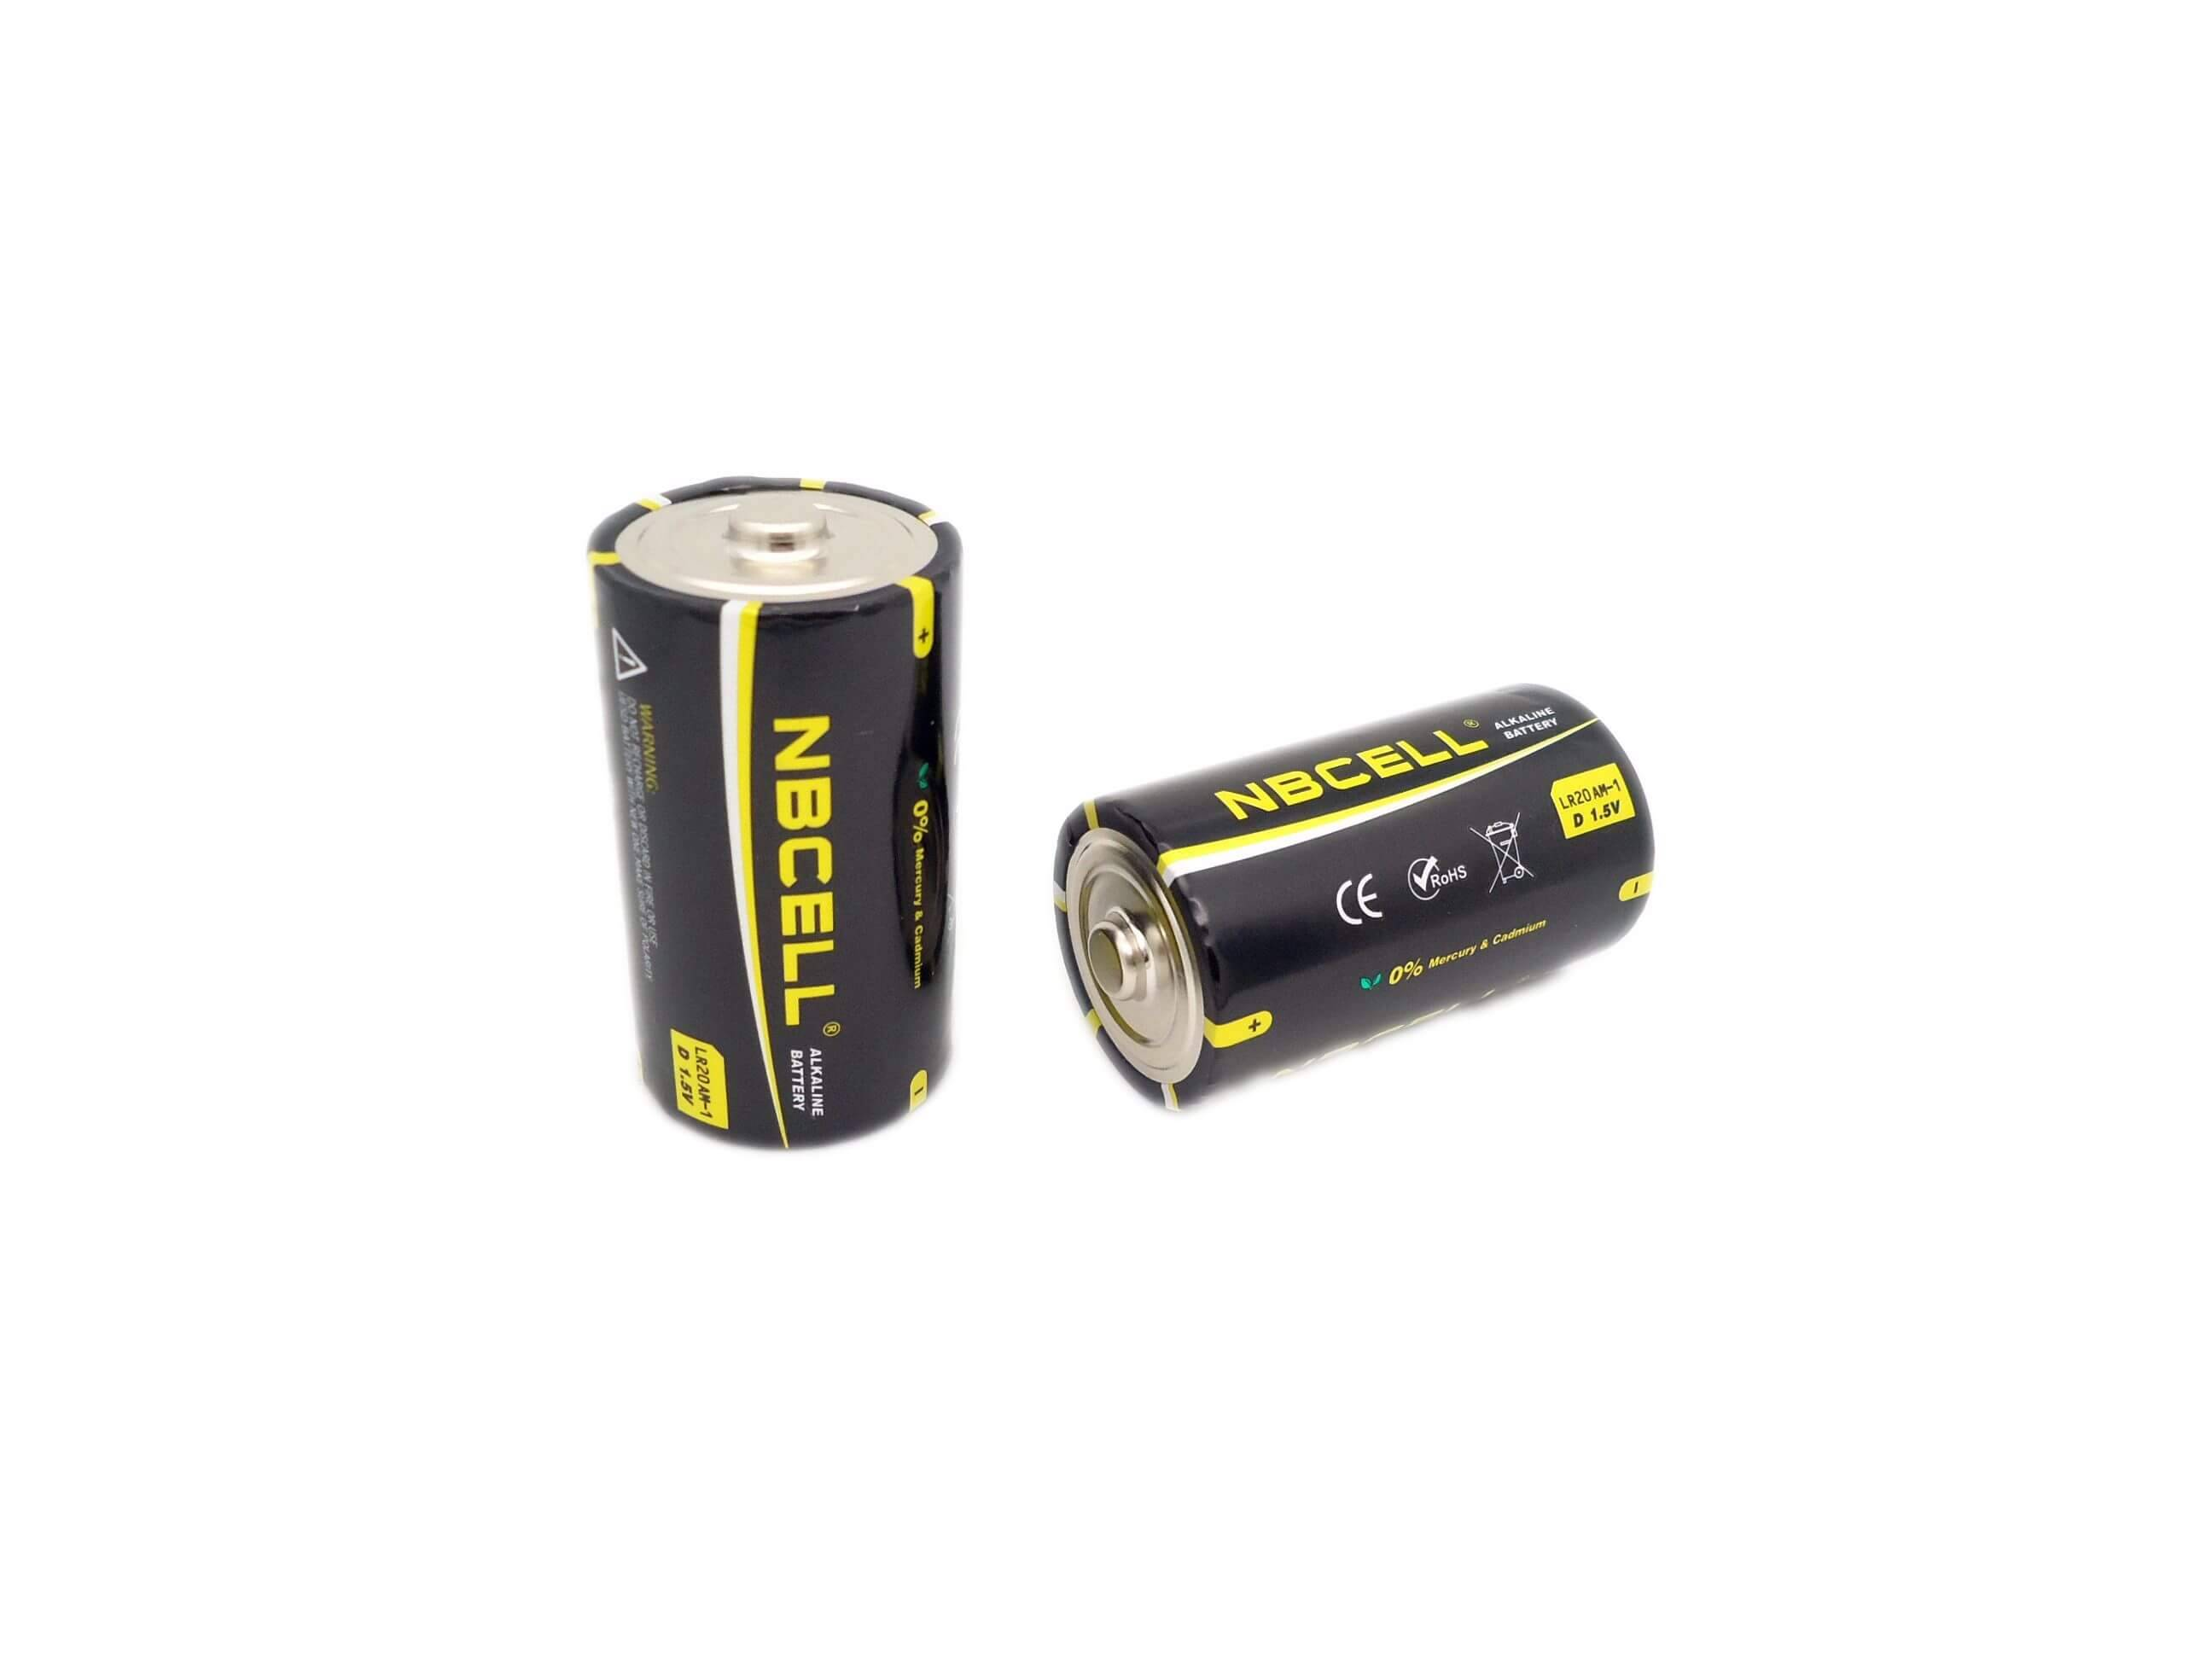 Alkaline Battery 1.5V LR20 D AM-1 (NBCELL brand or OEM)